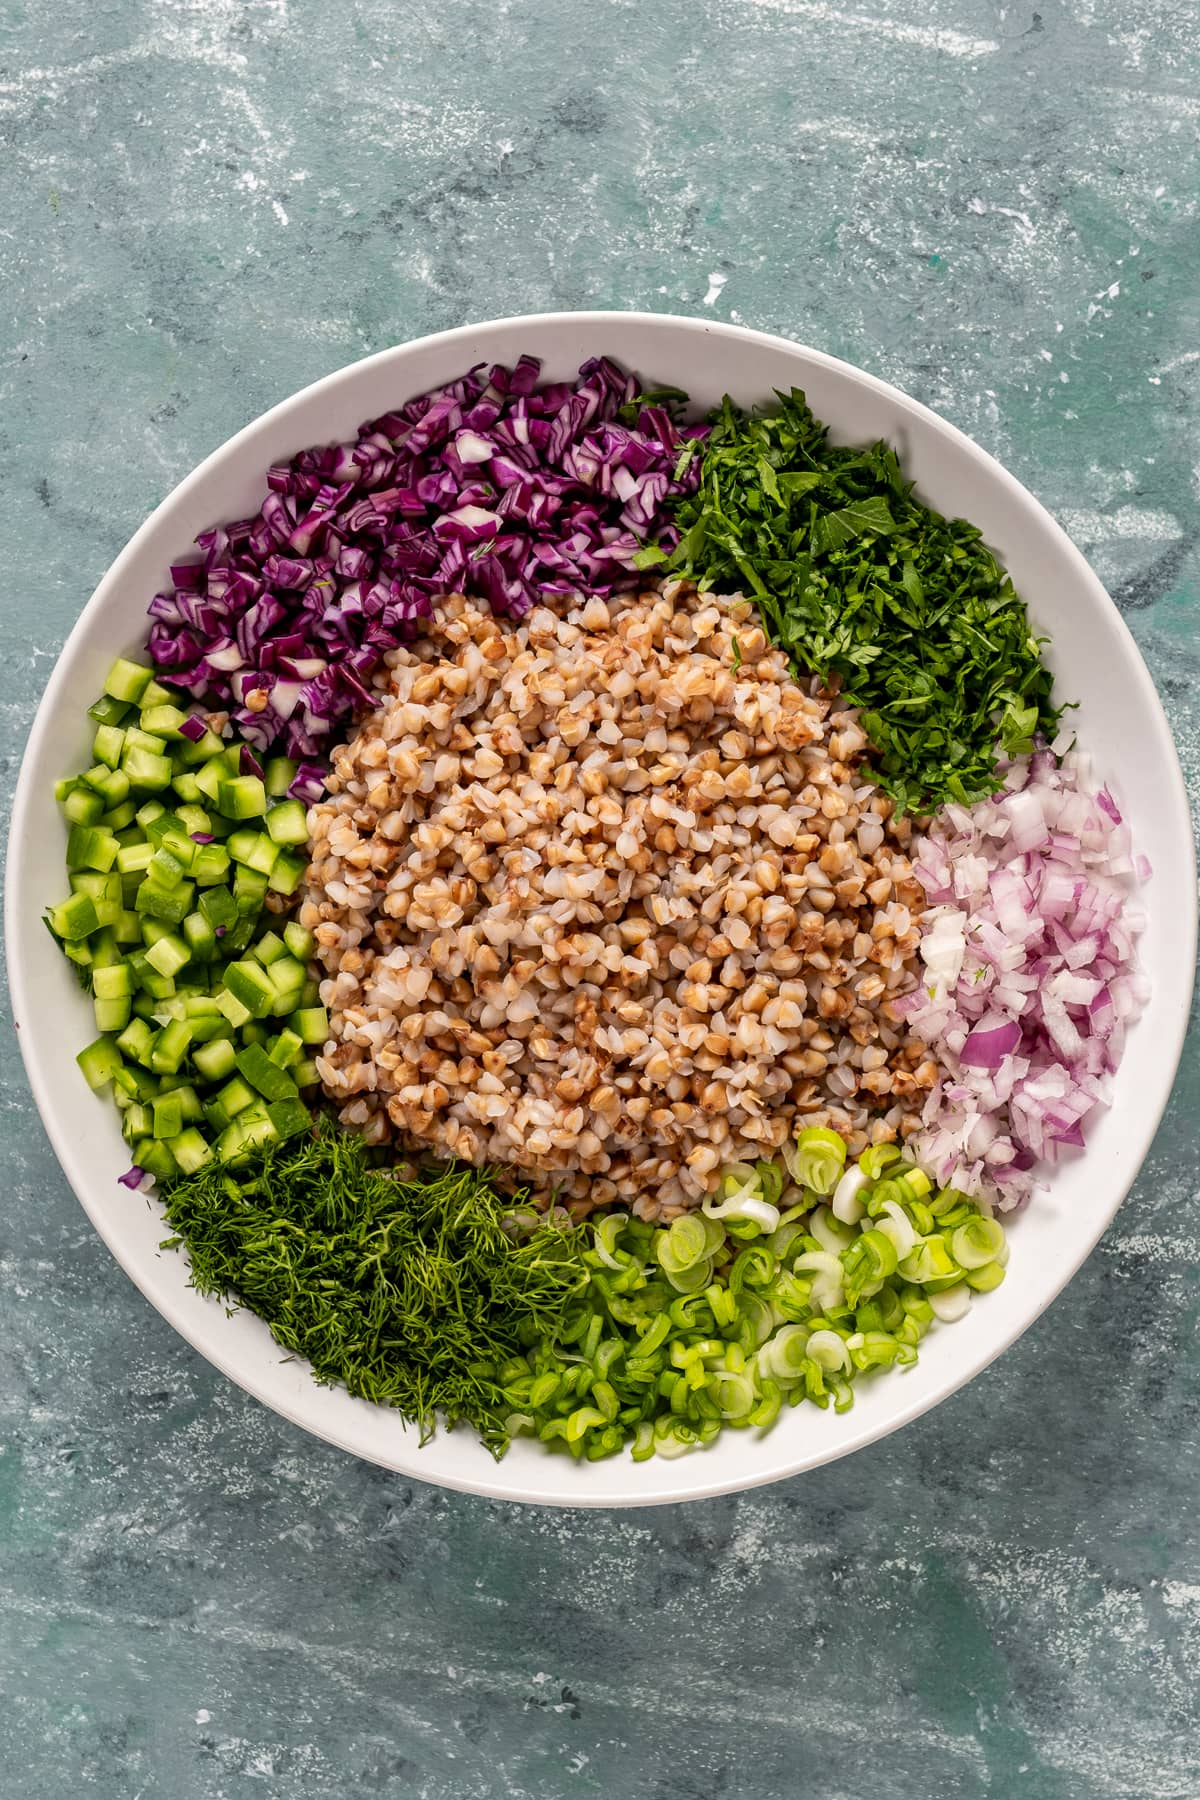 Cooked buckwheat, finely chopped red onion, red cabbage, parsley, fresh dill, green onions and cucumbers all in a white salad bowl.